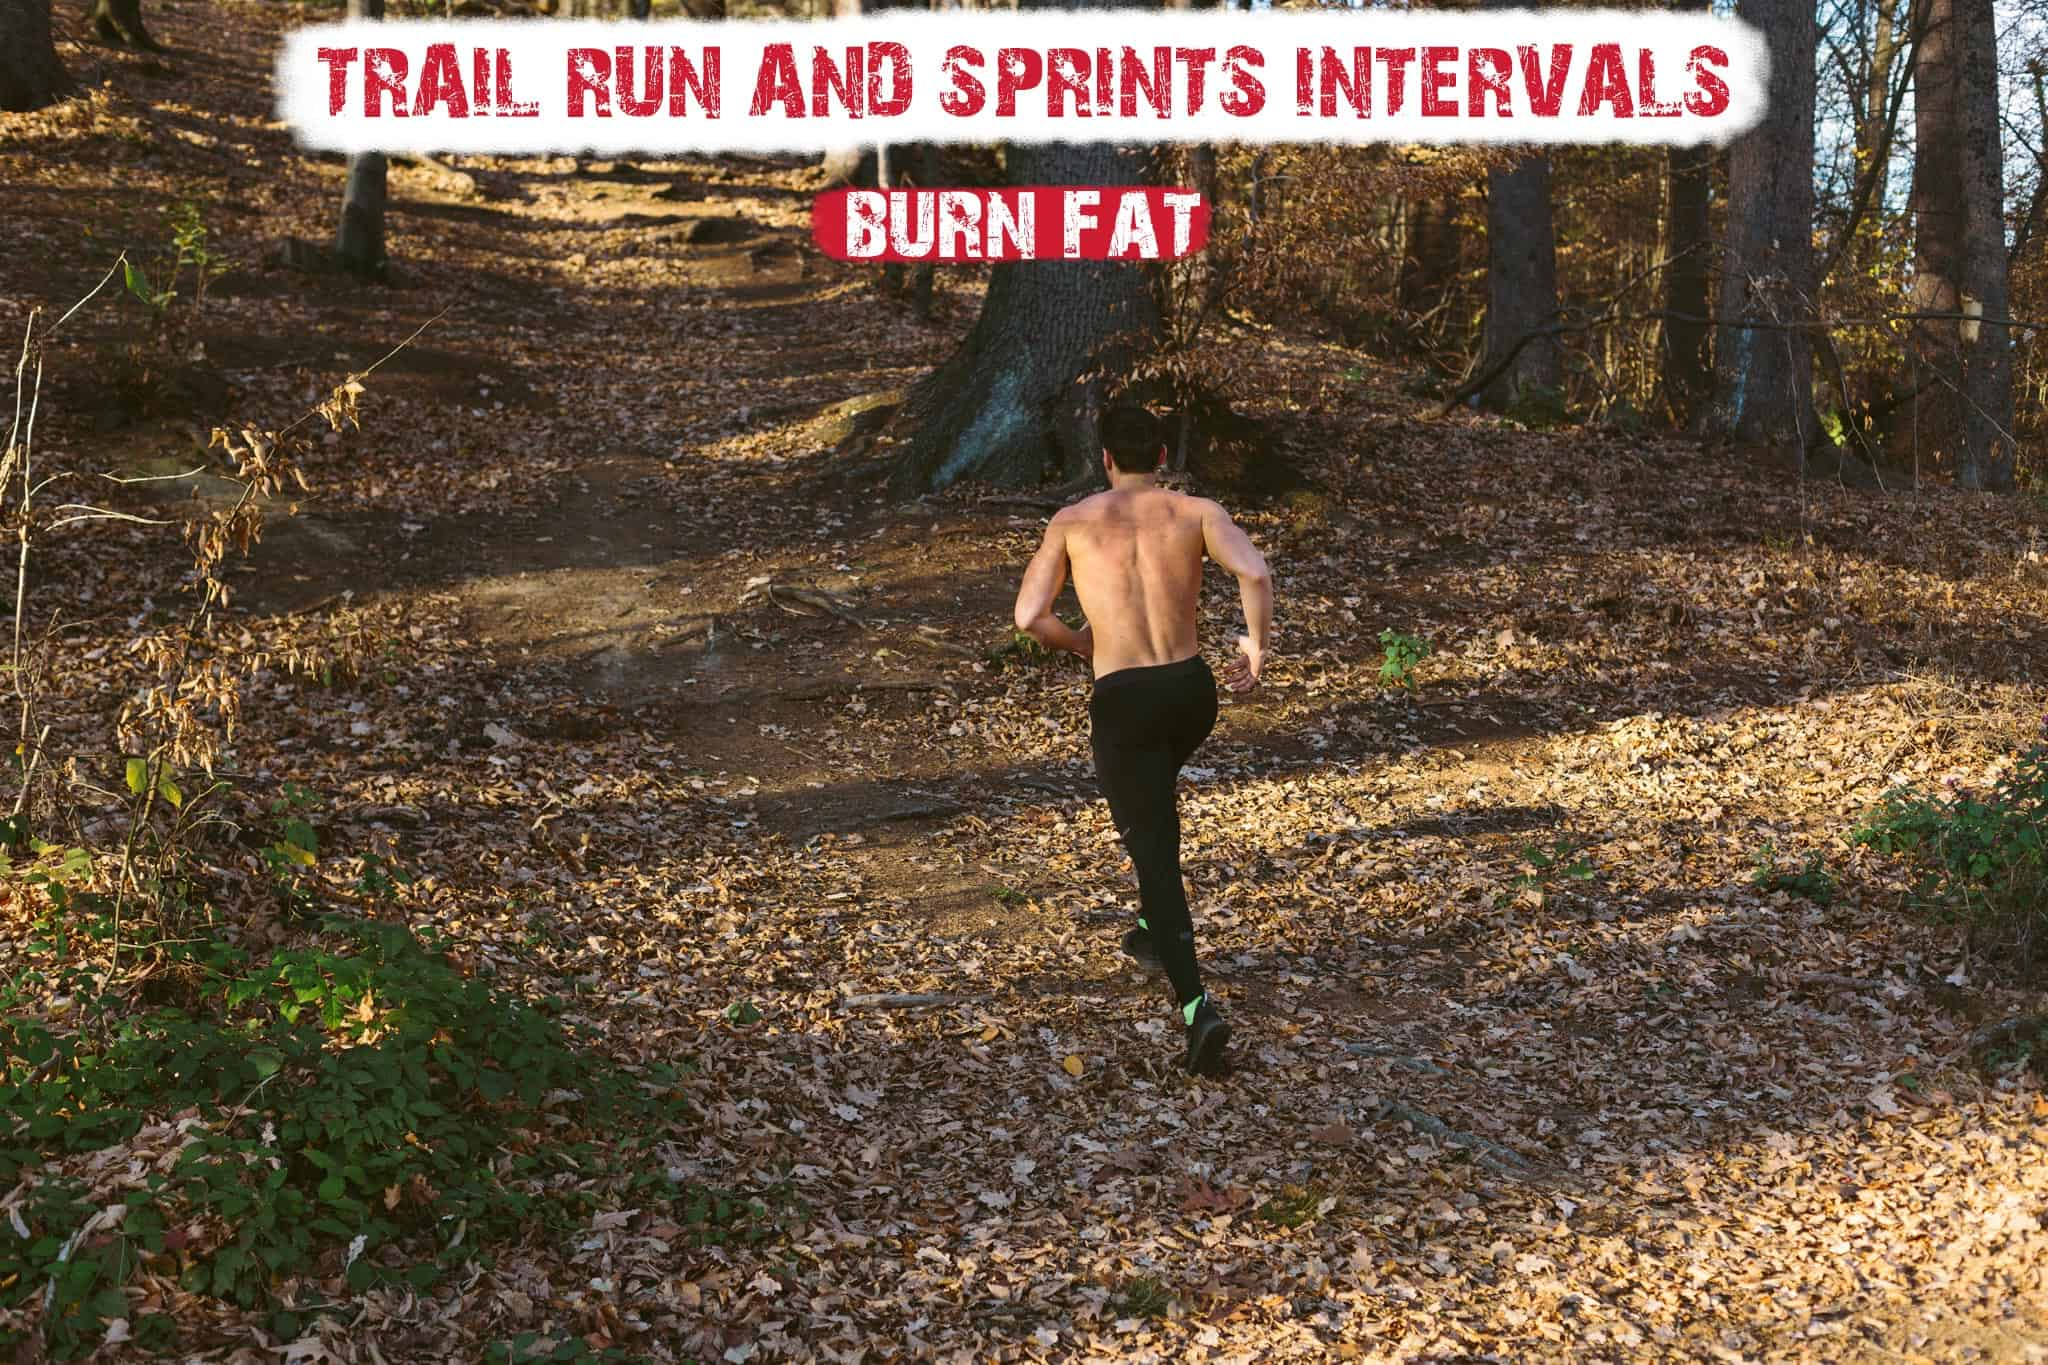 Trail Run and Sprints to Lose Fat